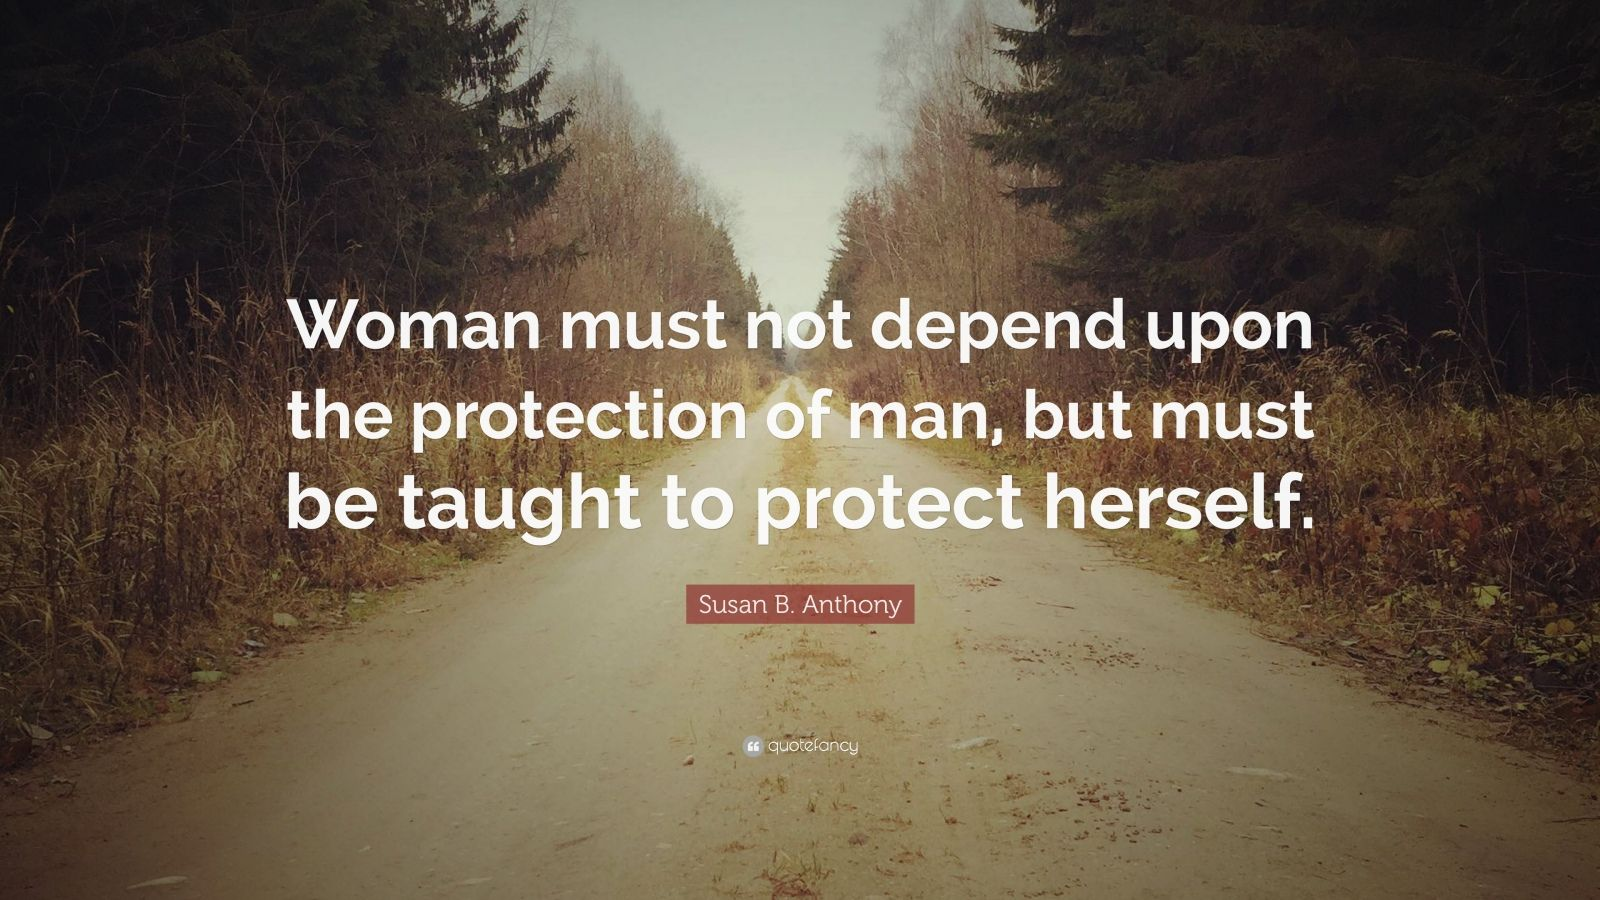 Feminist Inspirational Quote Wallpaper Susan B Anthony Quote Woman Must Not Depend Upon The